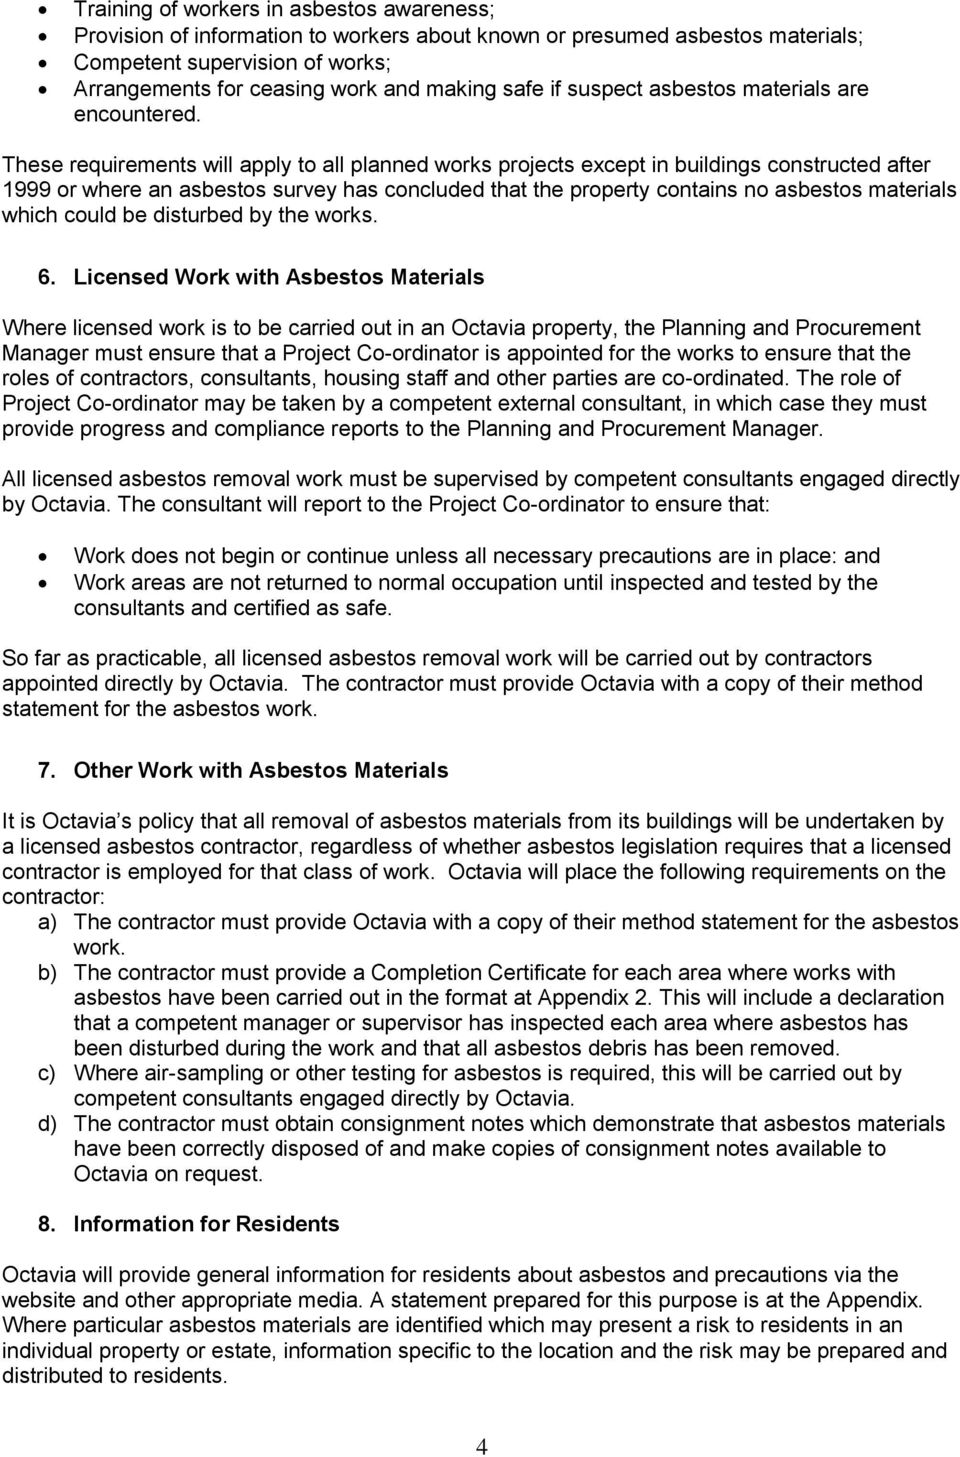 These requirements will apply to all planned works projects except in buildings constructed after 1999 or where an asbestos survey has concluded that the property contains no asbestos materials which